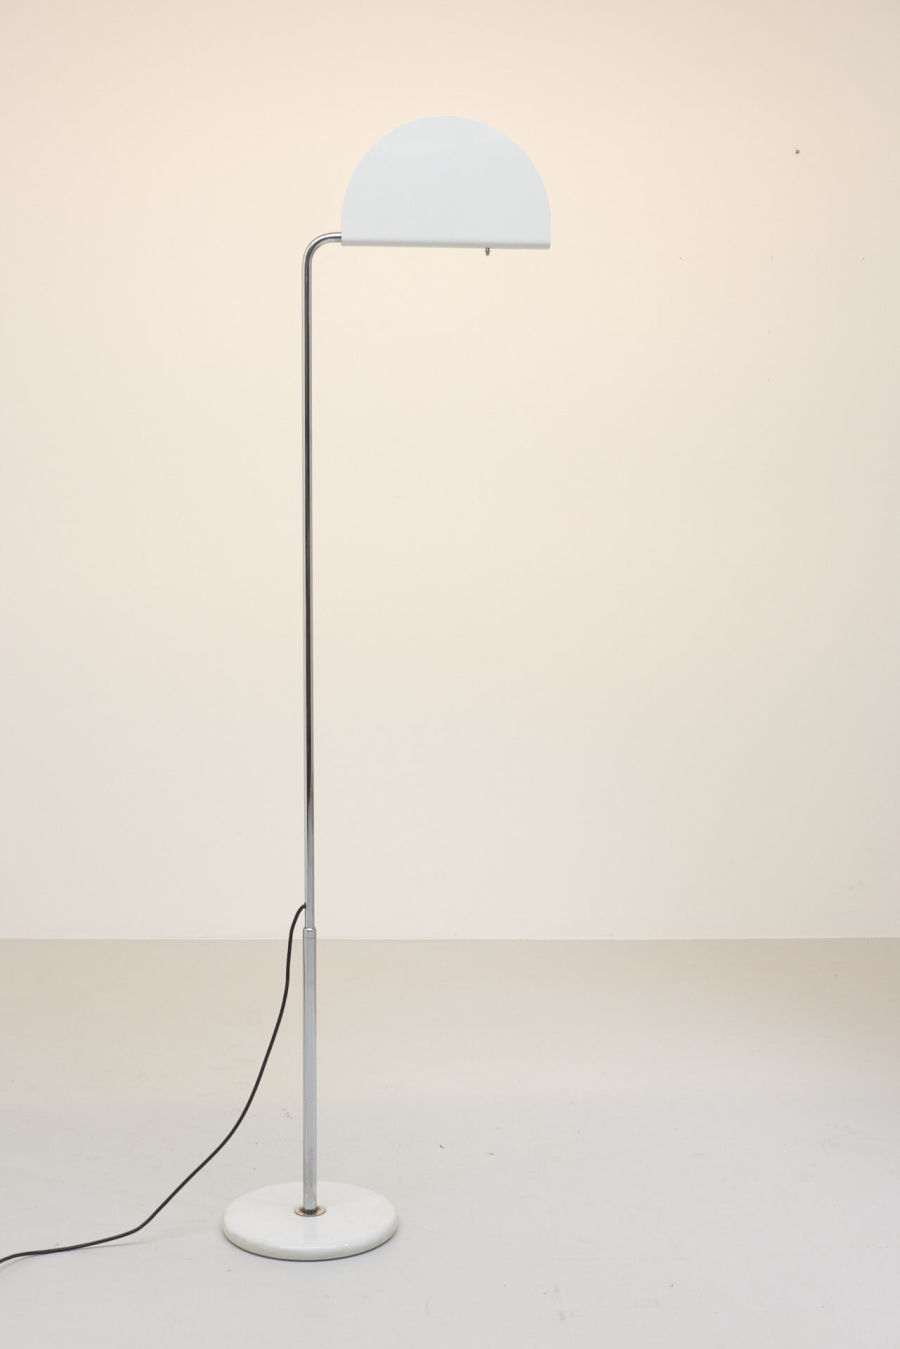 modestfurniture-vintage-2134-floor-lamp-bruno-gecchelin-mezzaluna-skipper03